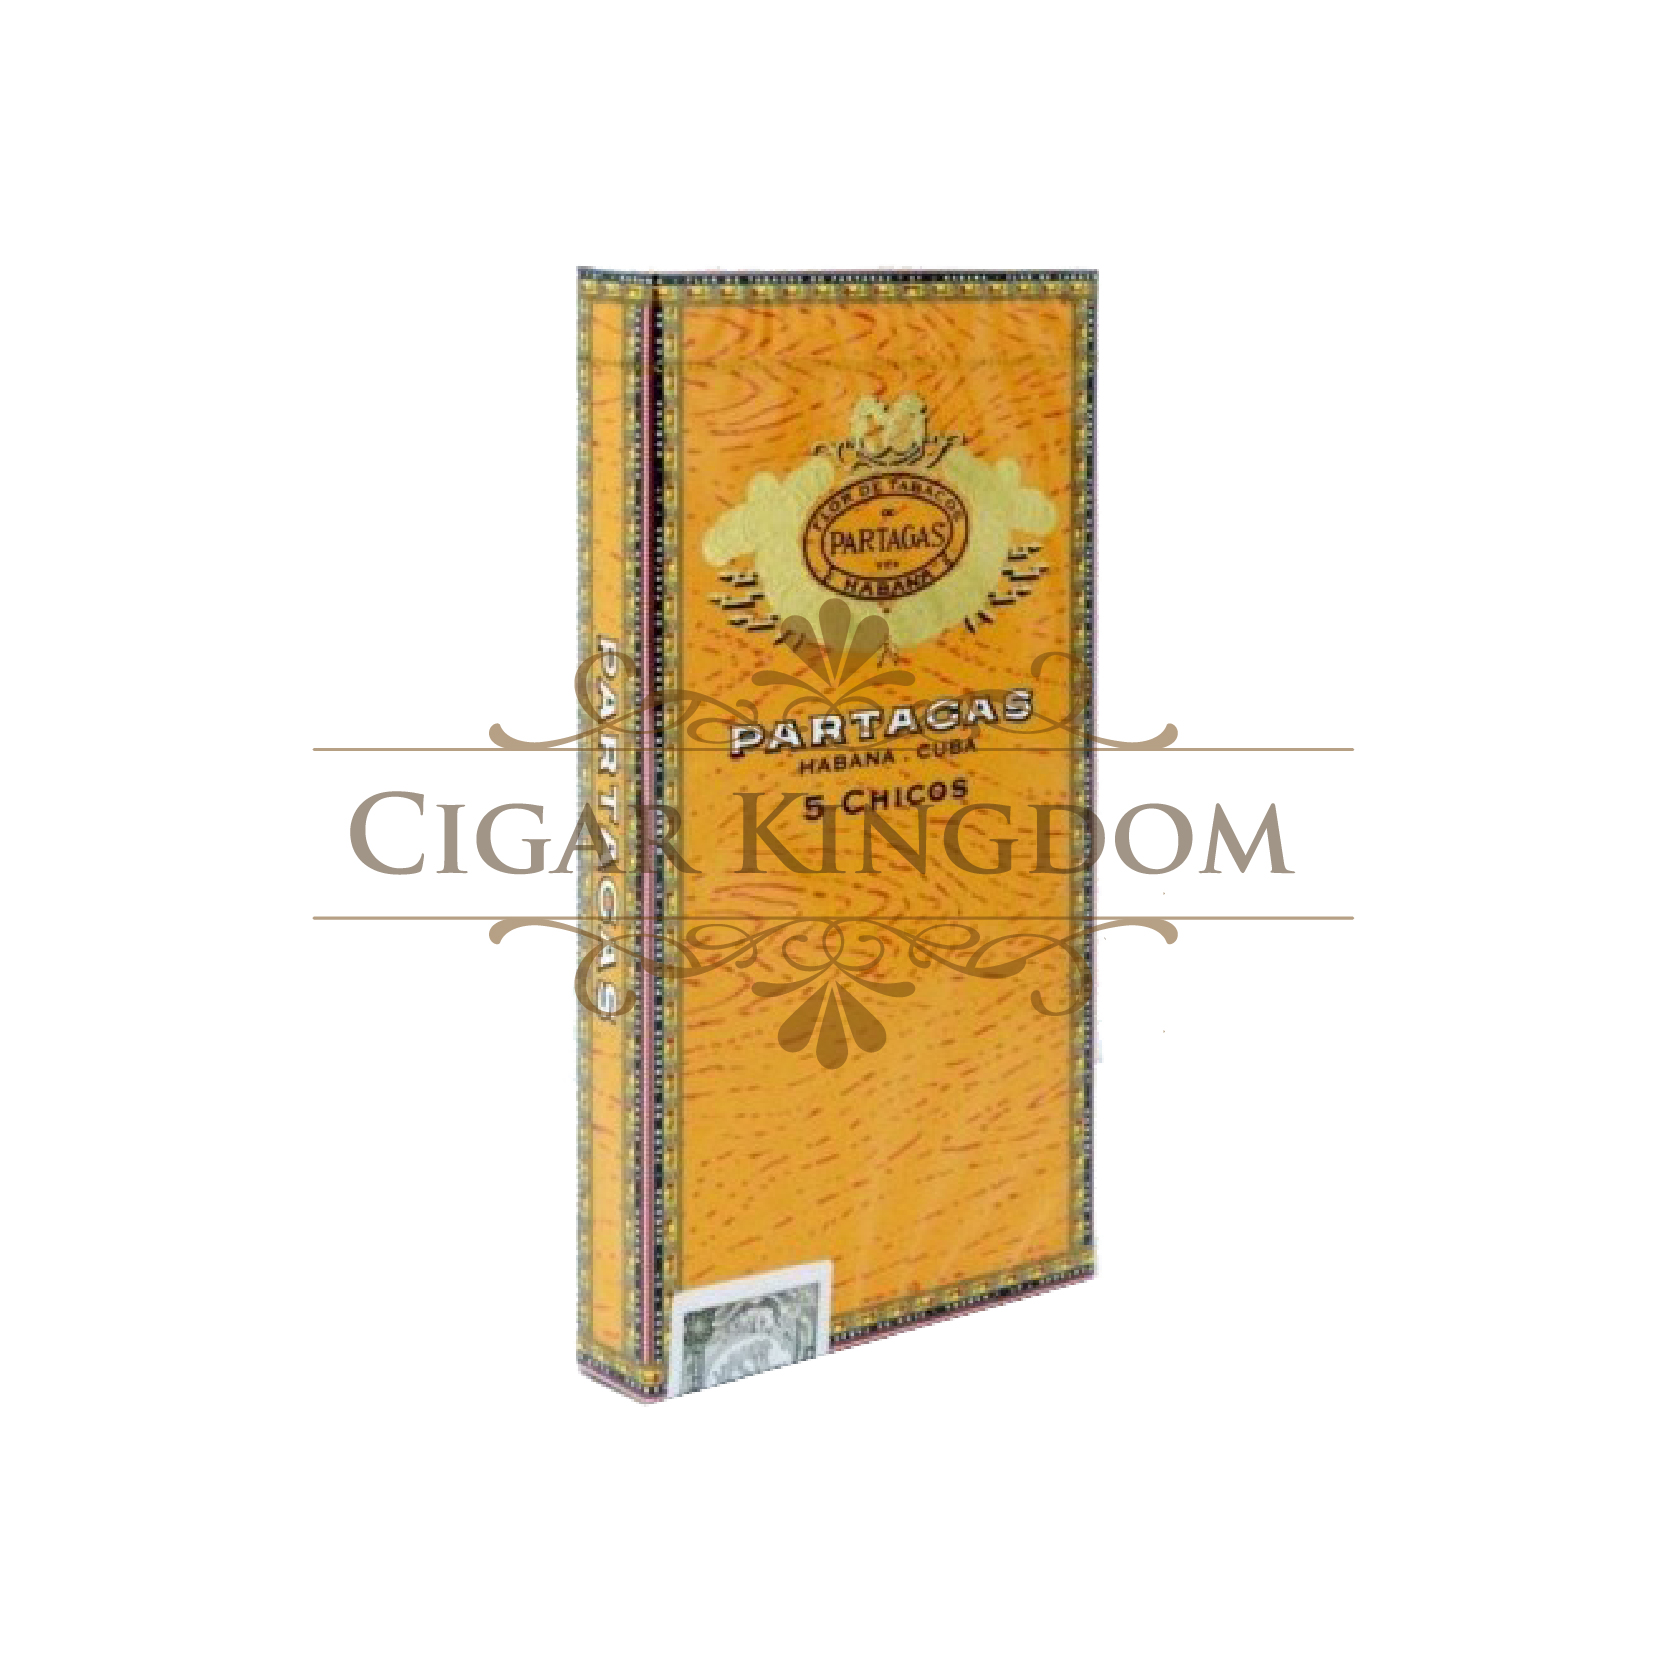 Partagas - Chico (Pack of 5s)